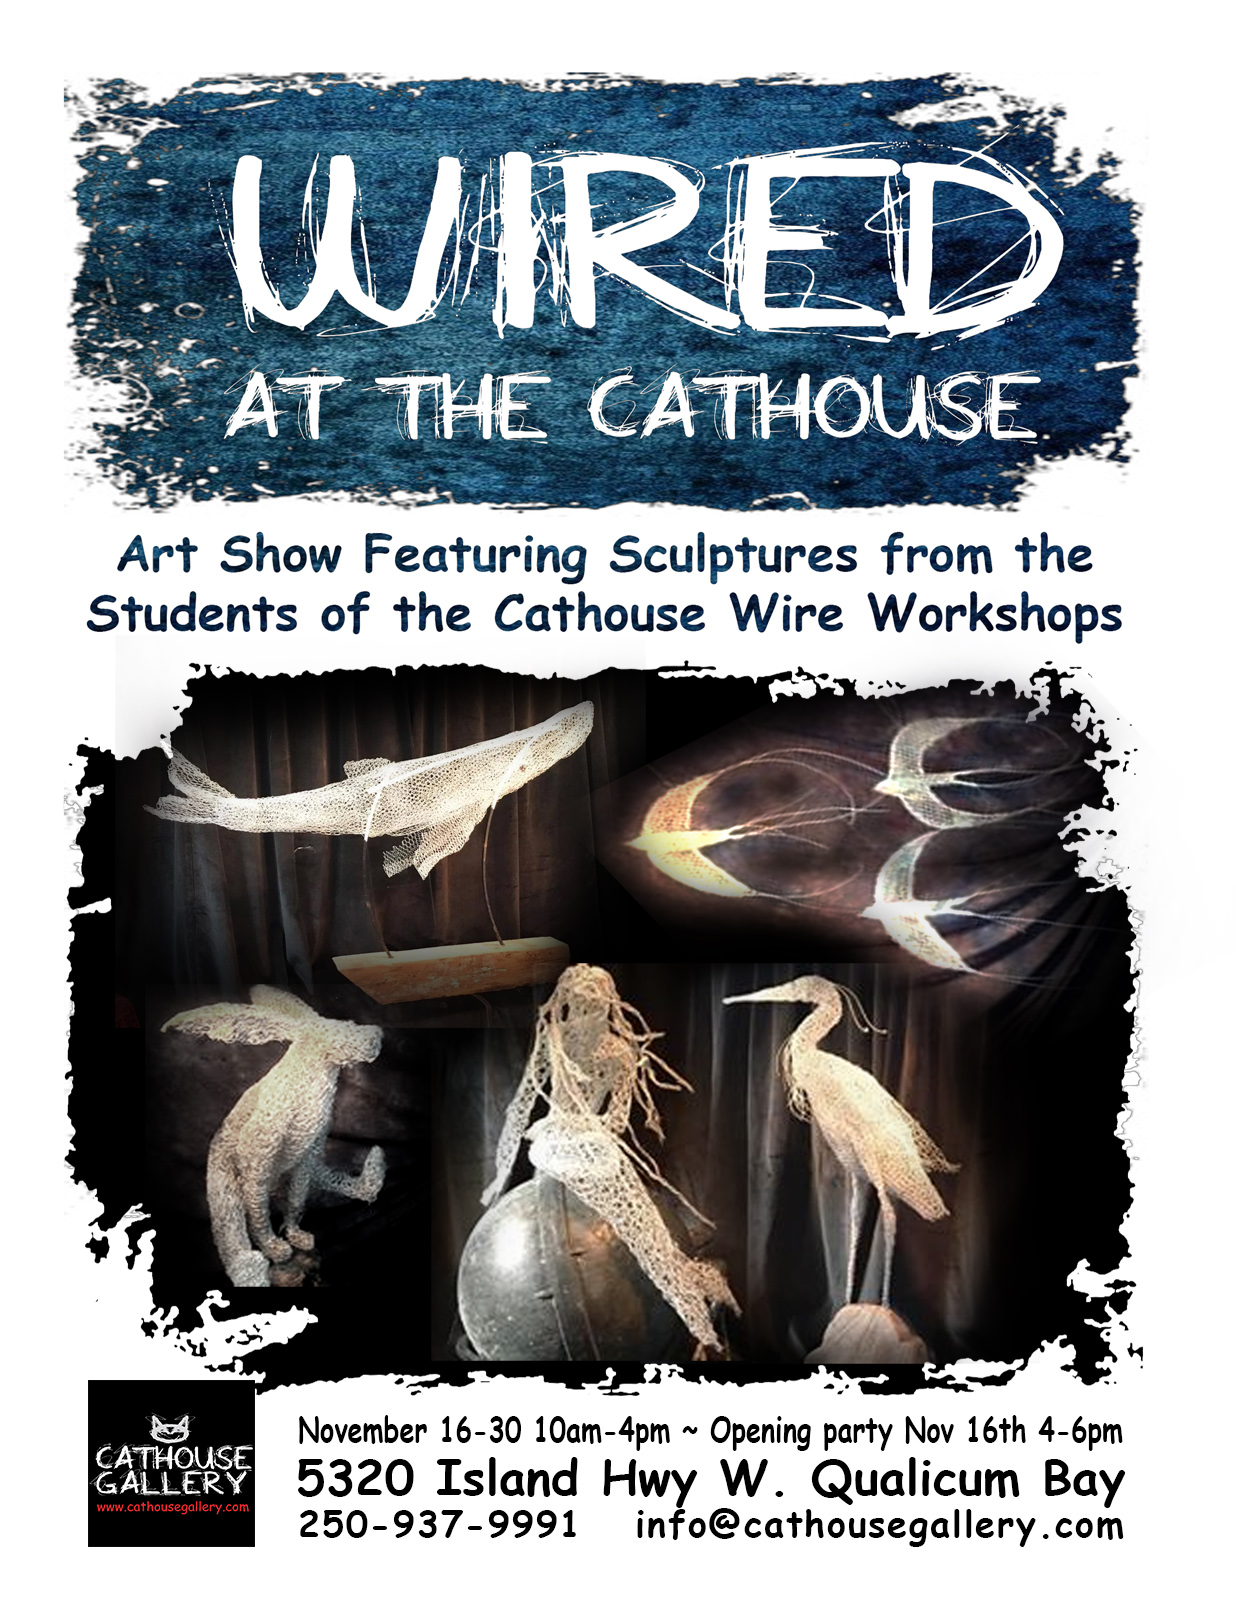 WIRED at the Cathouse - Art Show Featuring Sculptures from the Students of the Cathouse Wire Workshops.